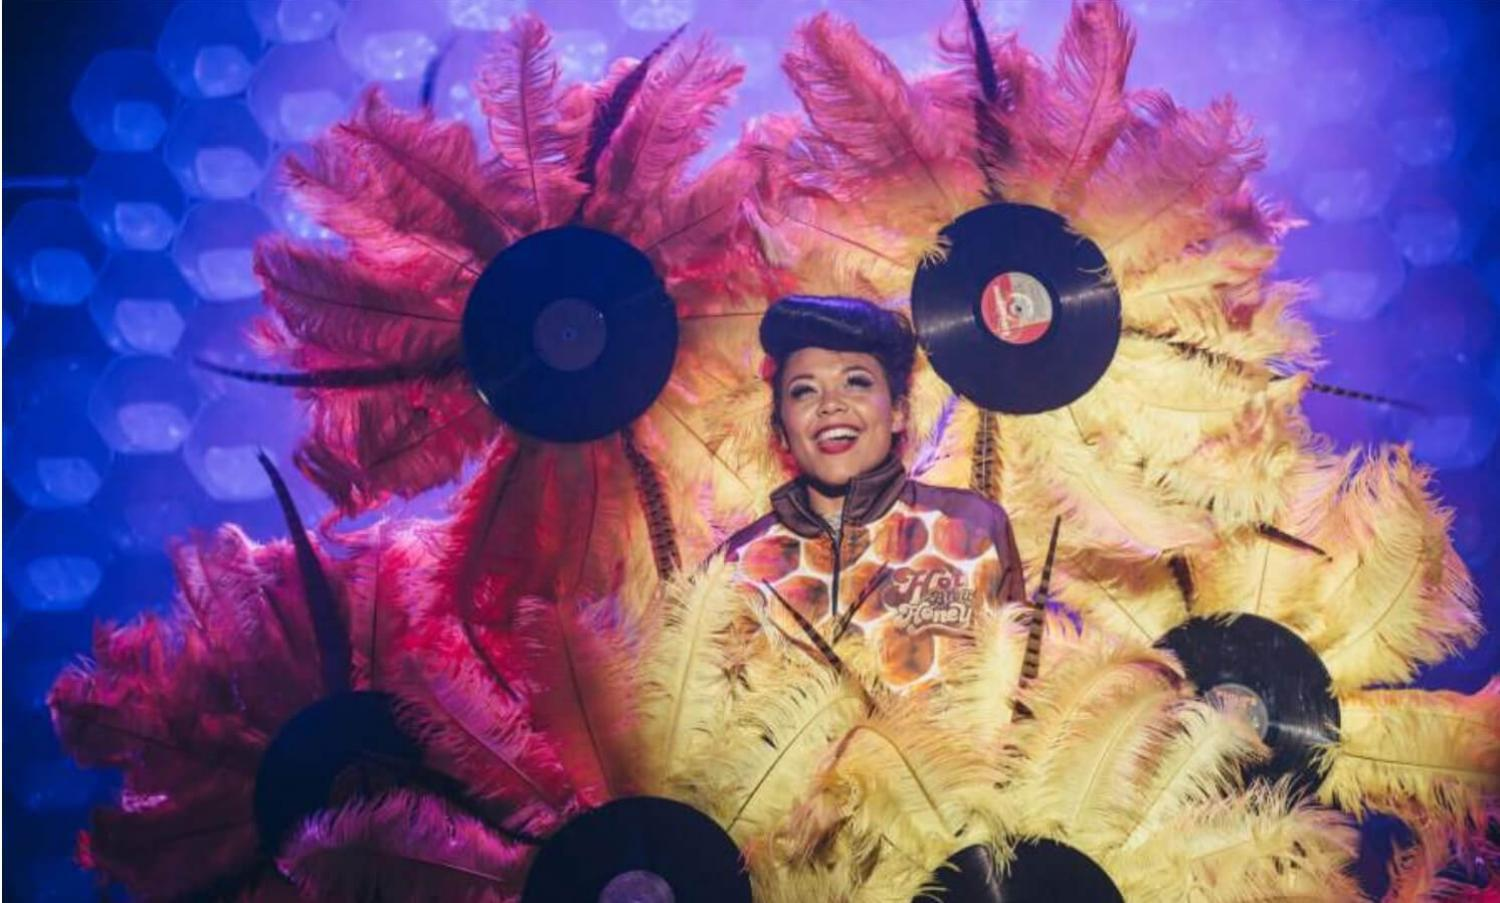 Hot Brown Honey on stage at a Fringe venue surrounded by large feathers and records made to look like flowers. Image by: David Monteith Hodge